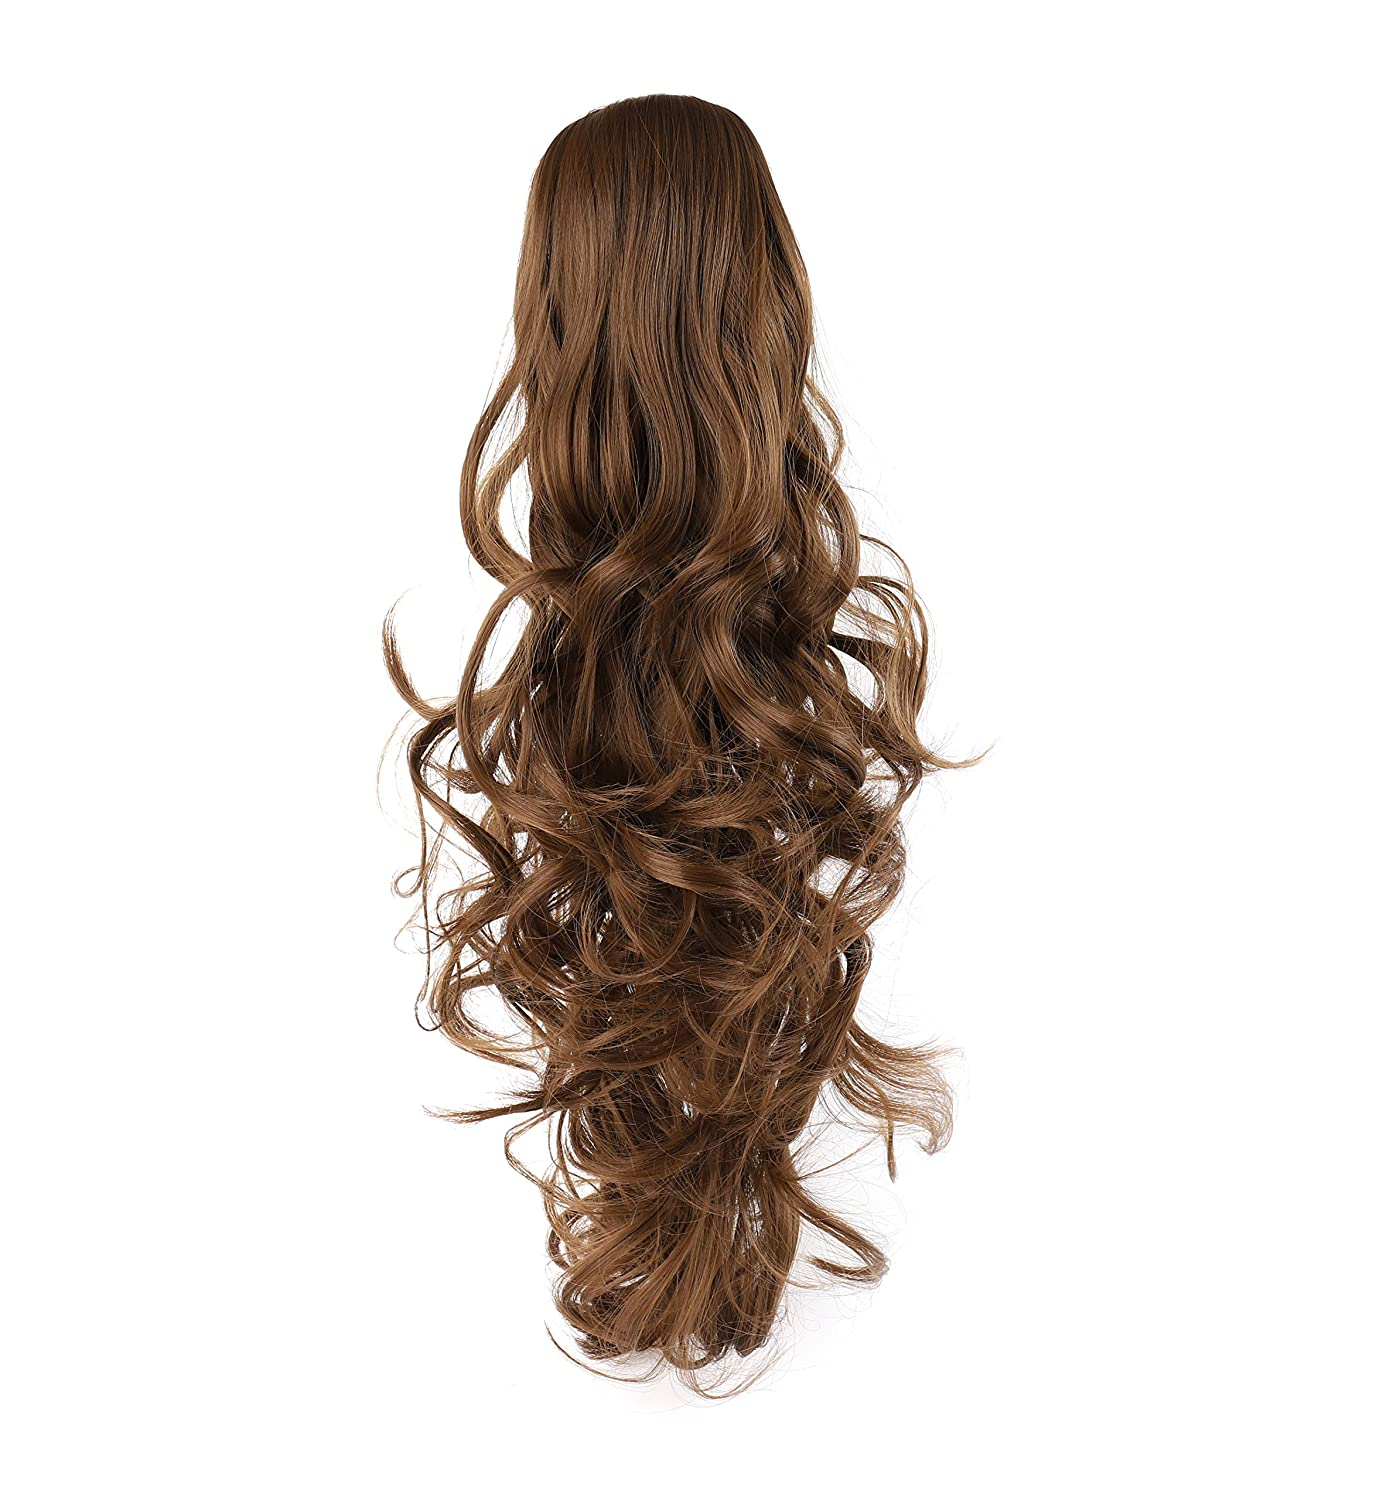 OneDor 20 Curly Synthetic Clip In Claw Drawstring Ponytail Hair Extension Synthetic Hairpiece 190g with a jaw/claw clip (1#-Black)